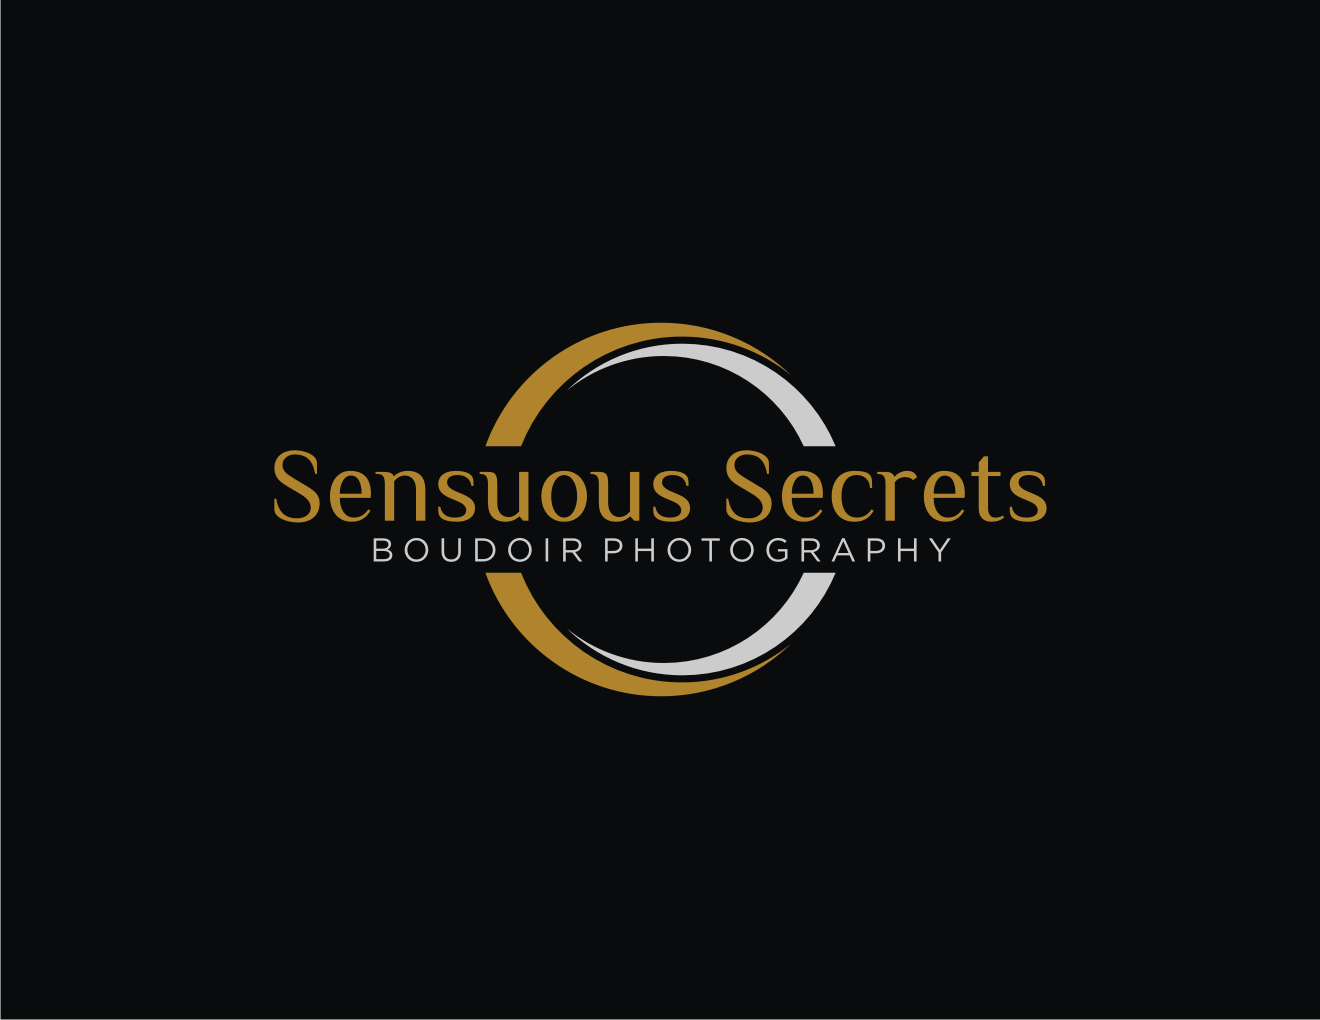 Logo Design by Ekarini Puspitasari - Entry No. 4 in the Logo Design Contest Artistic Logo Design for Sensuous Secrets Boudoir Photography.